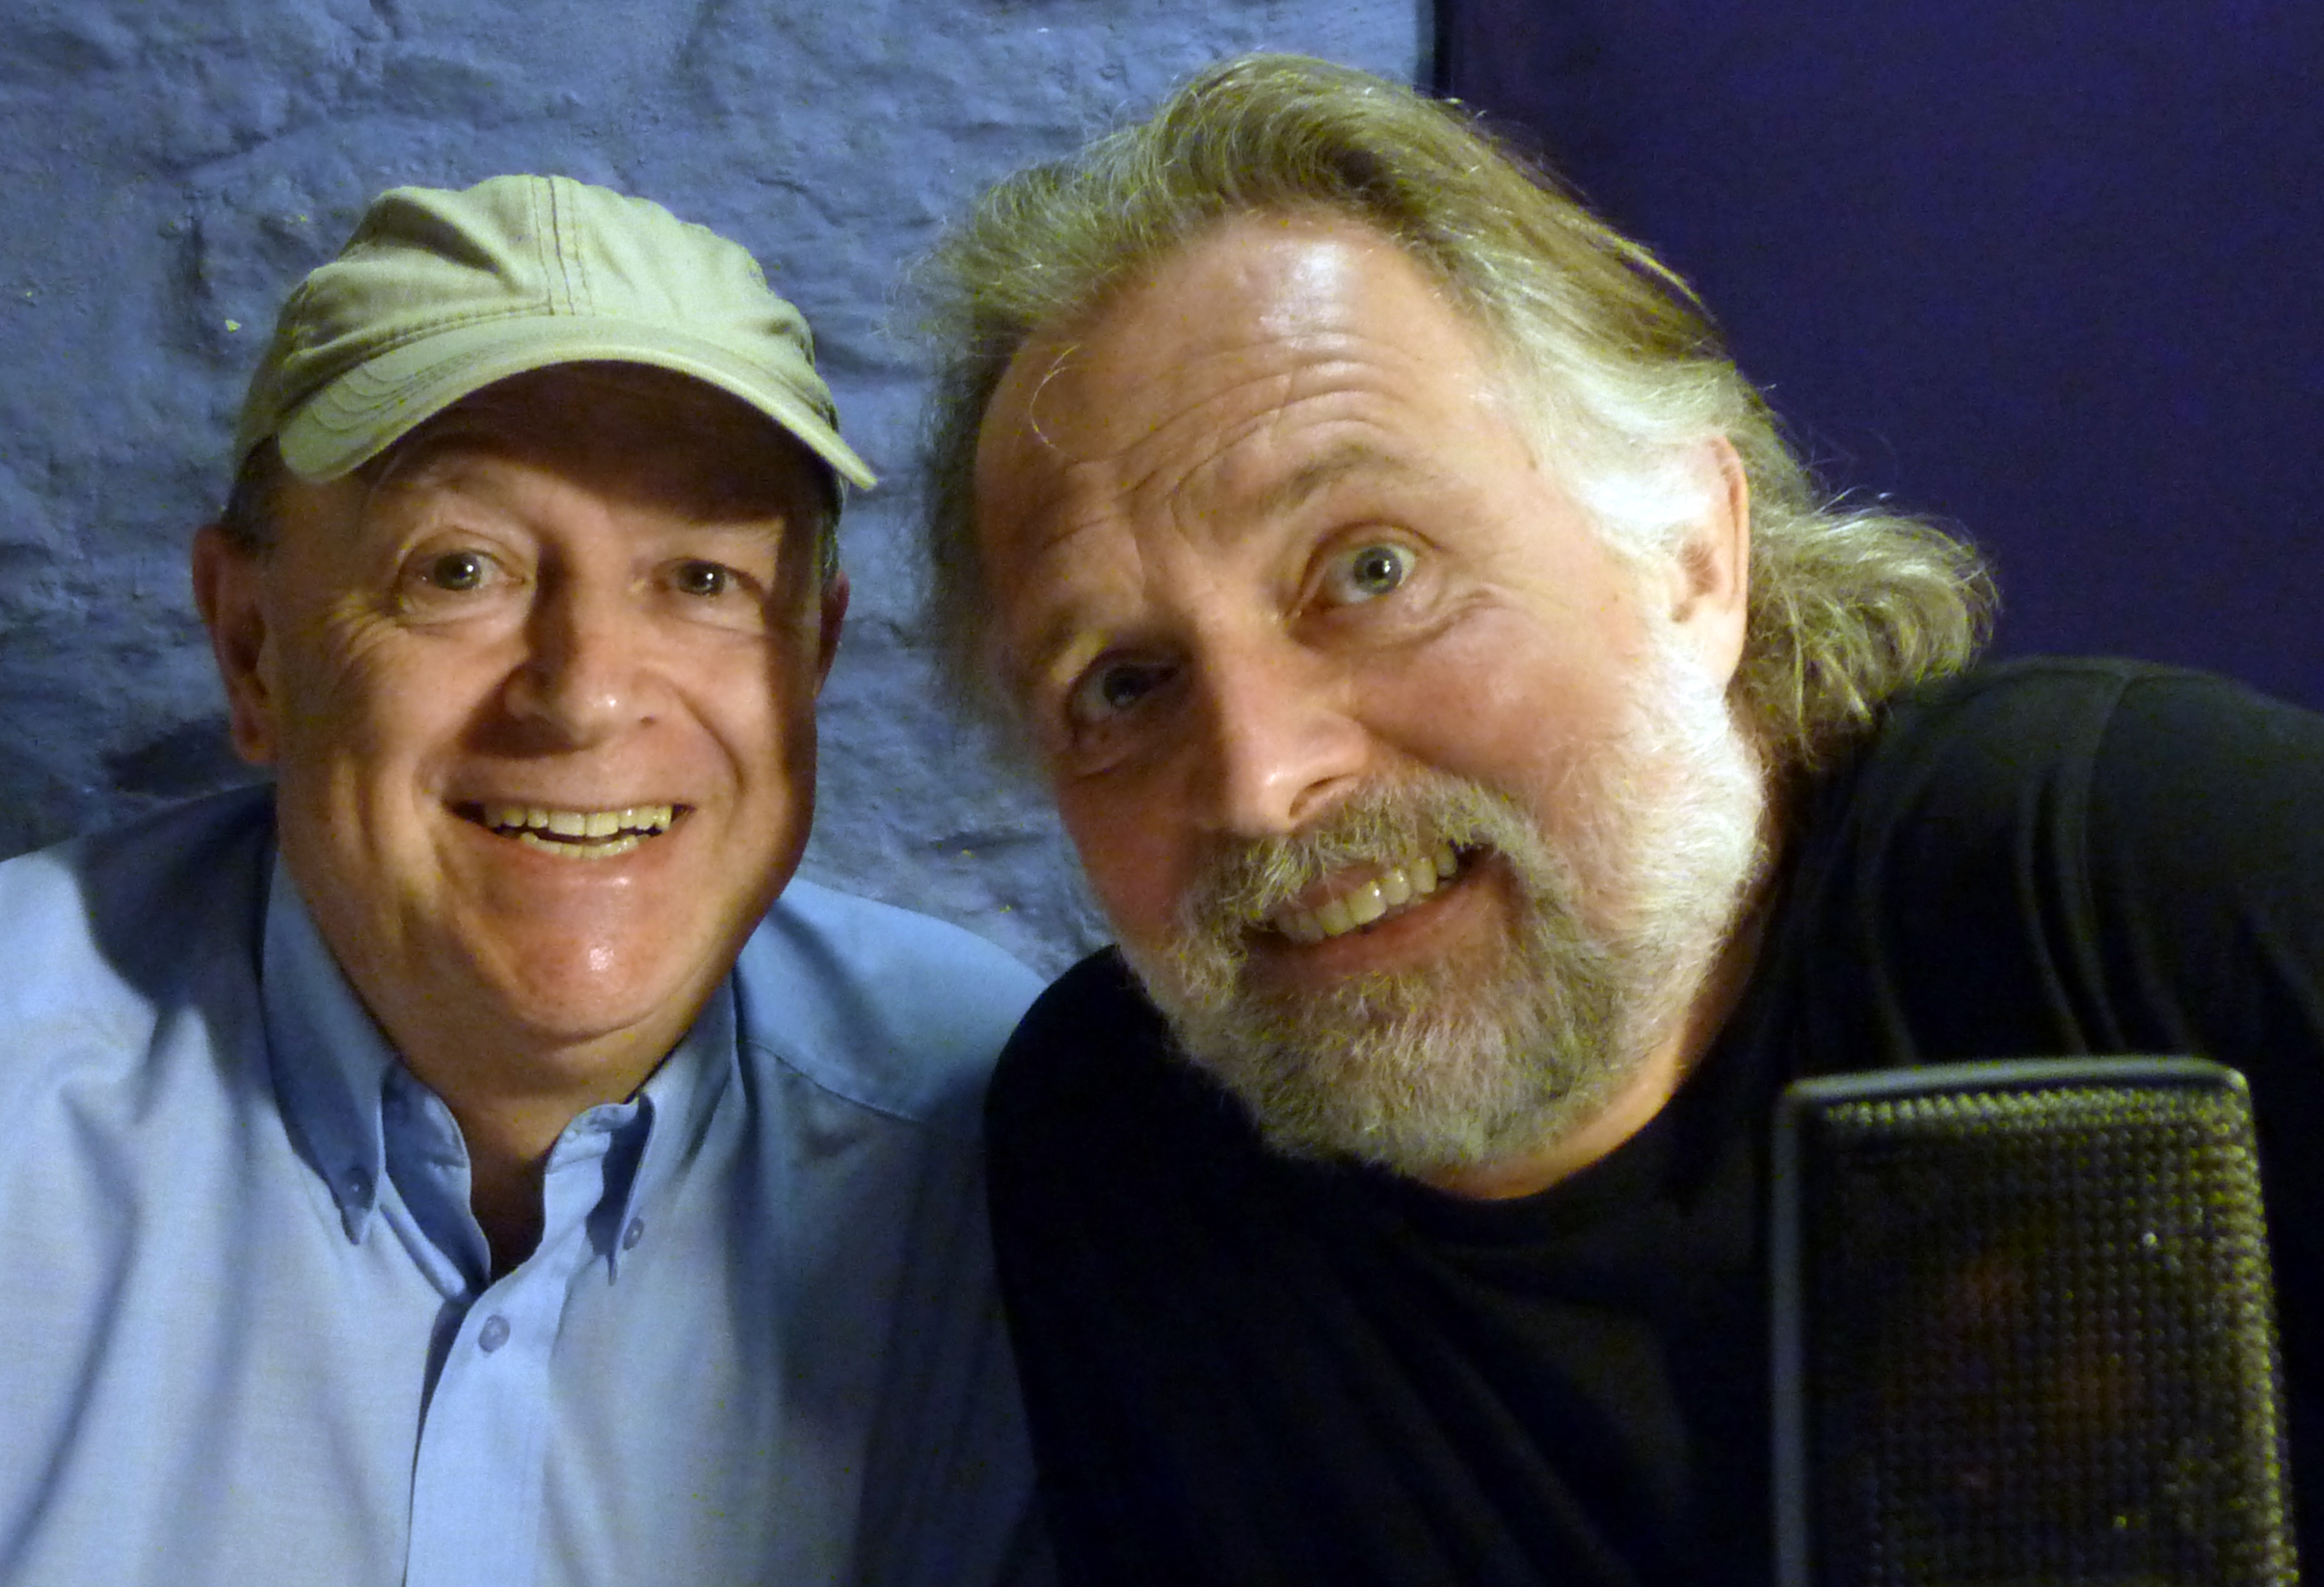 Rik Mayall and Dave Dutton